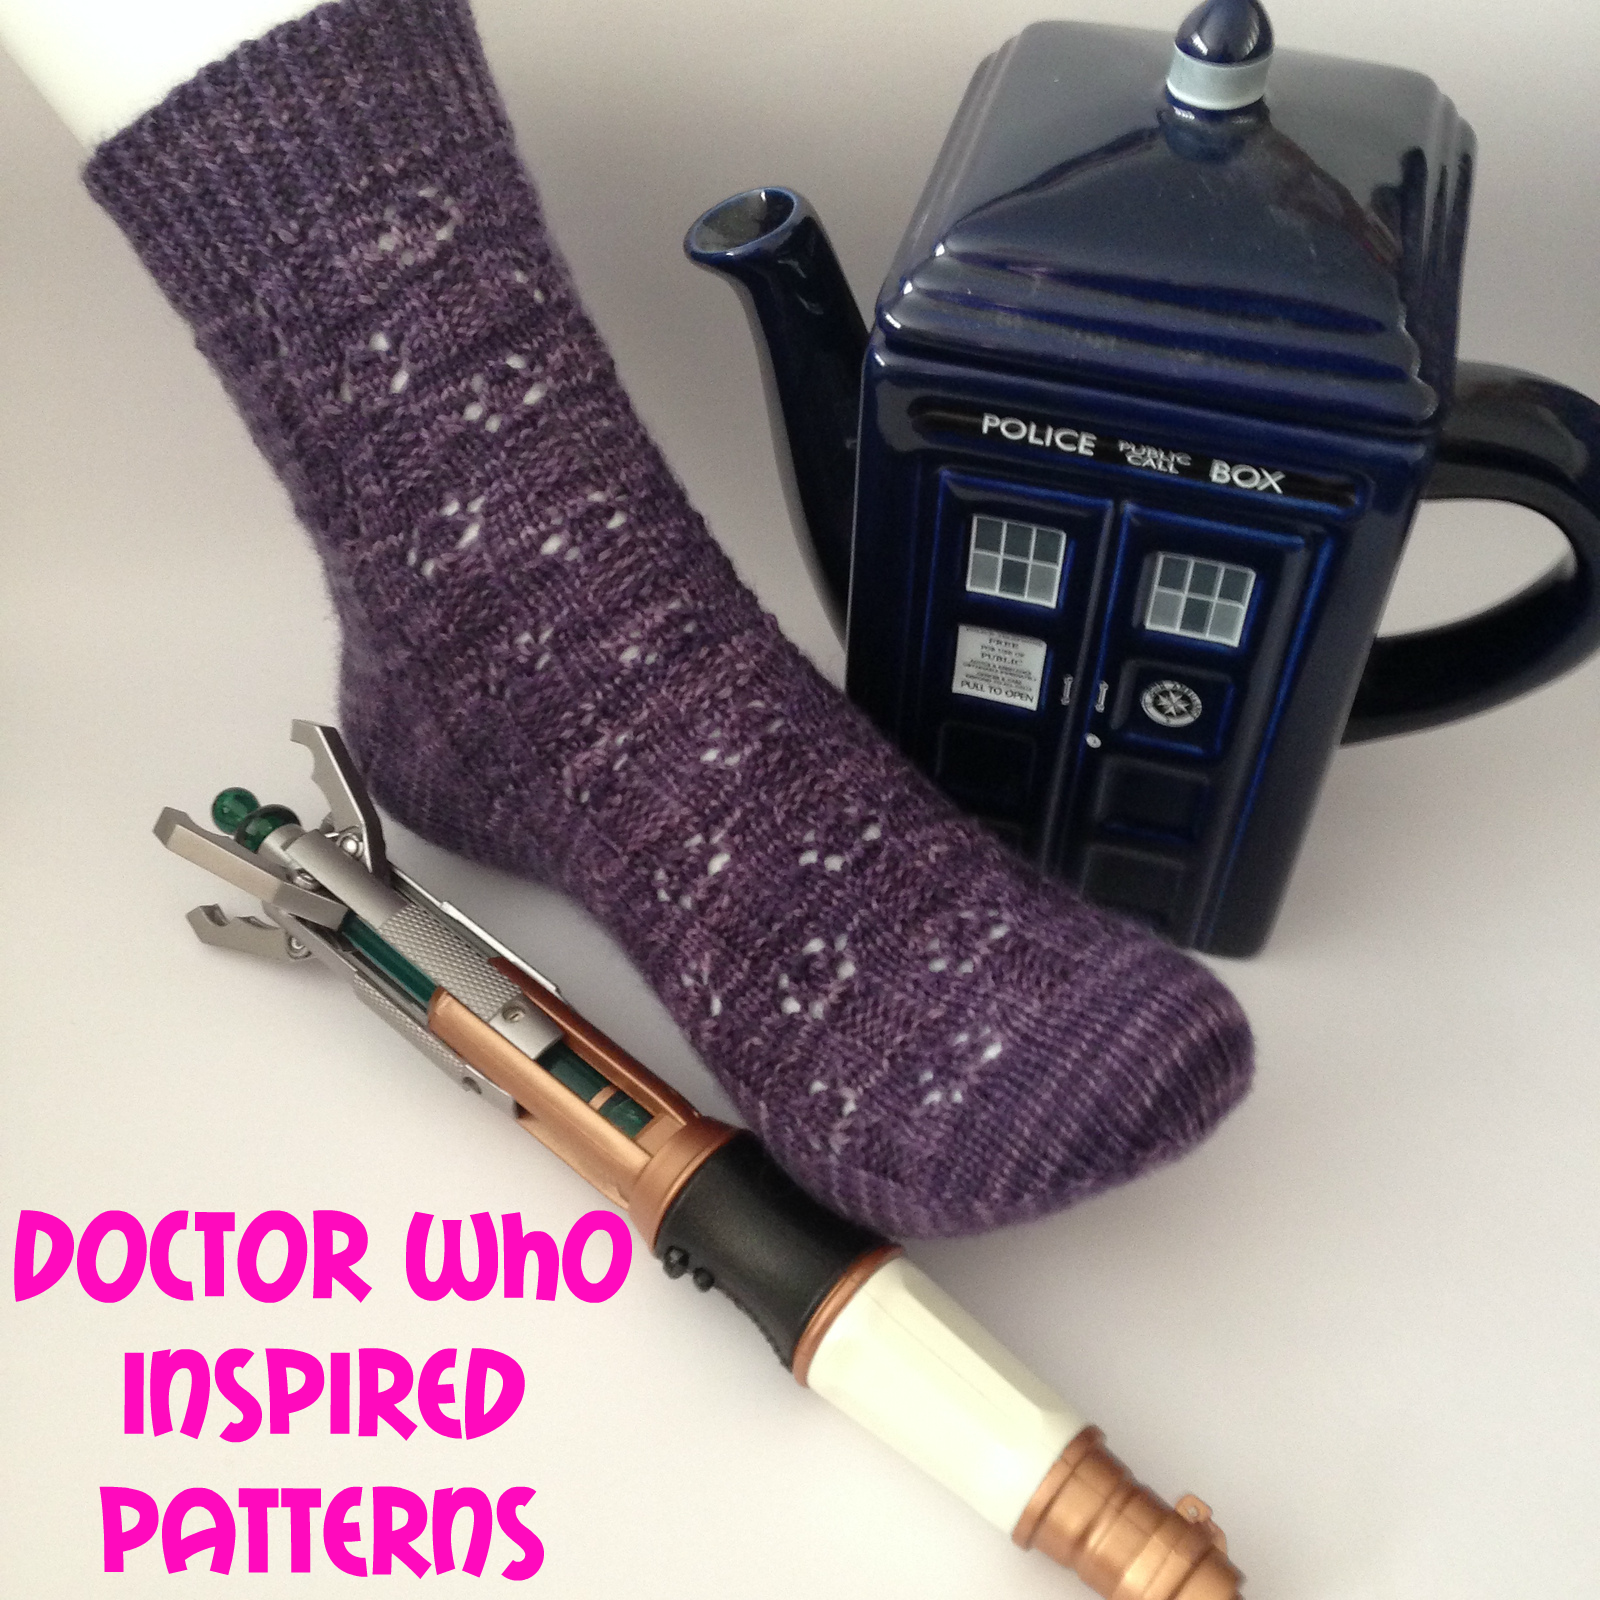 Doctor Who Inspired Patterns